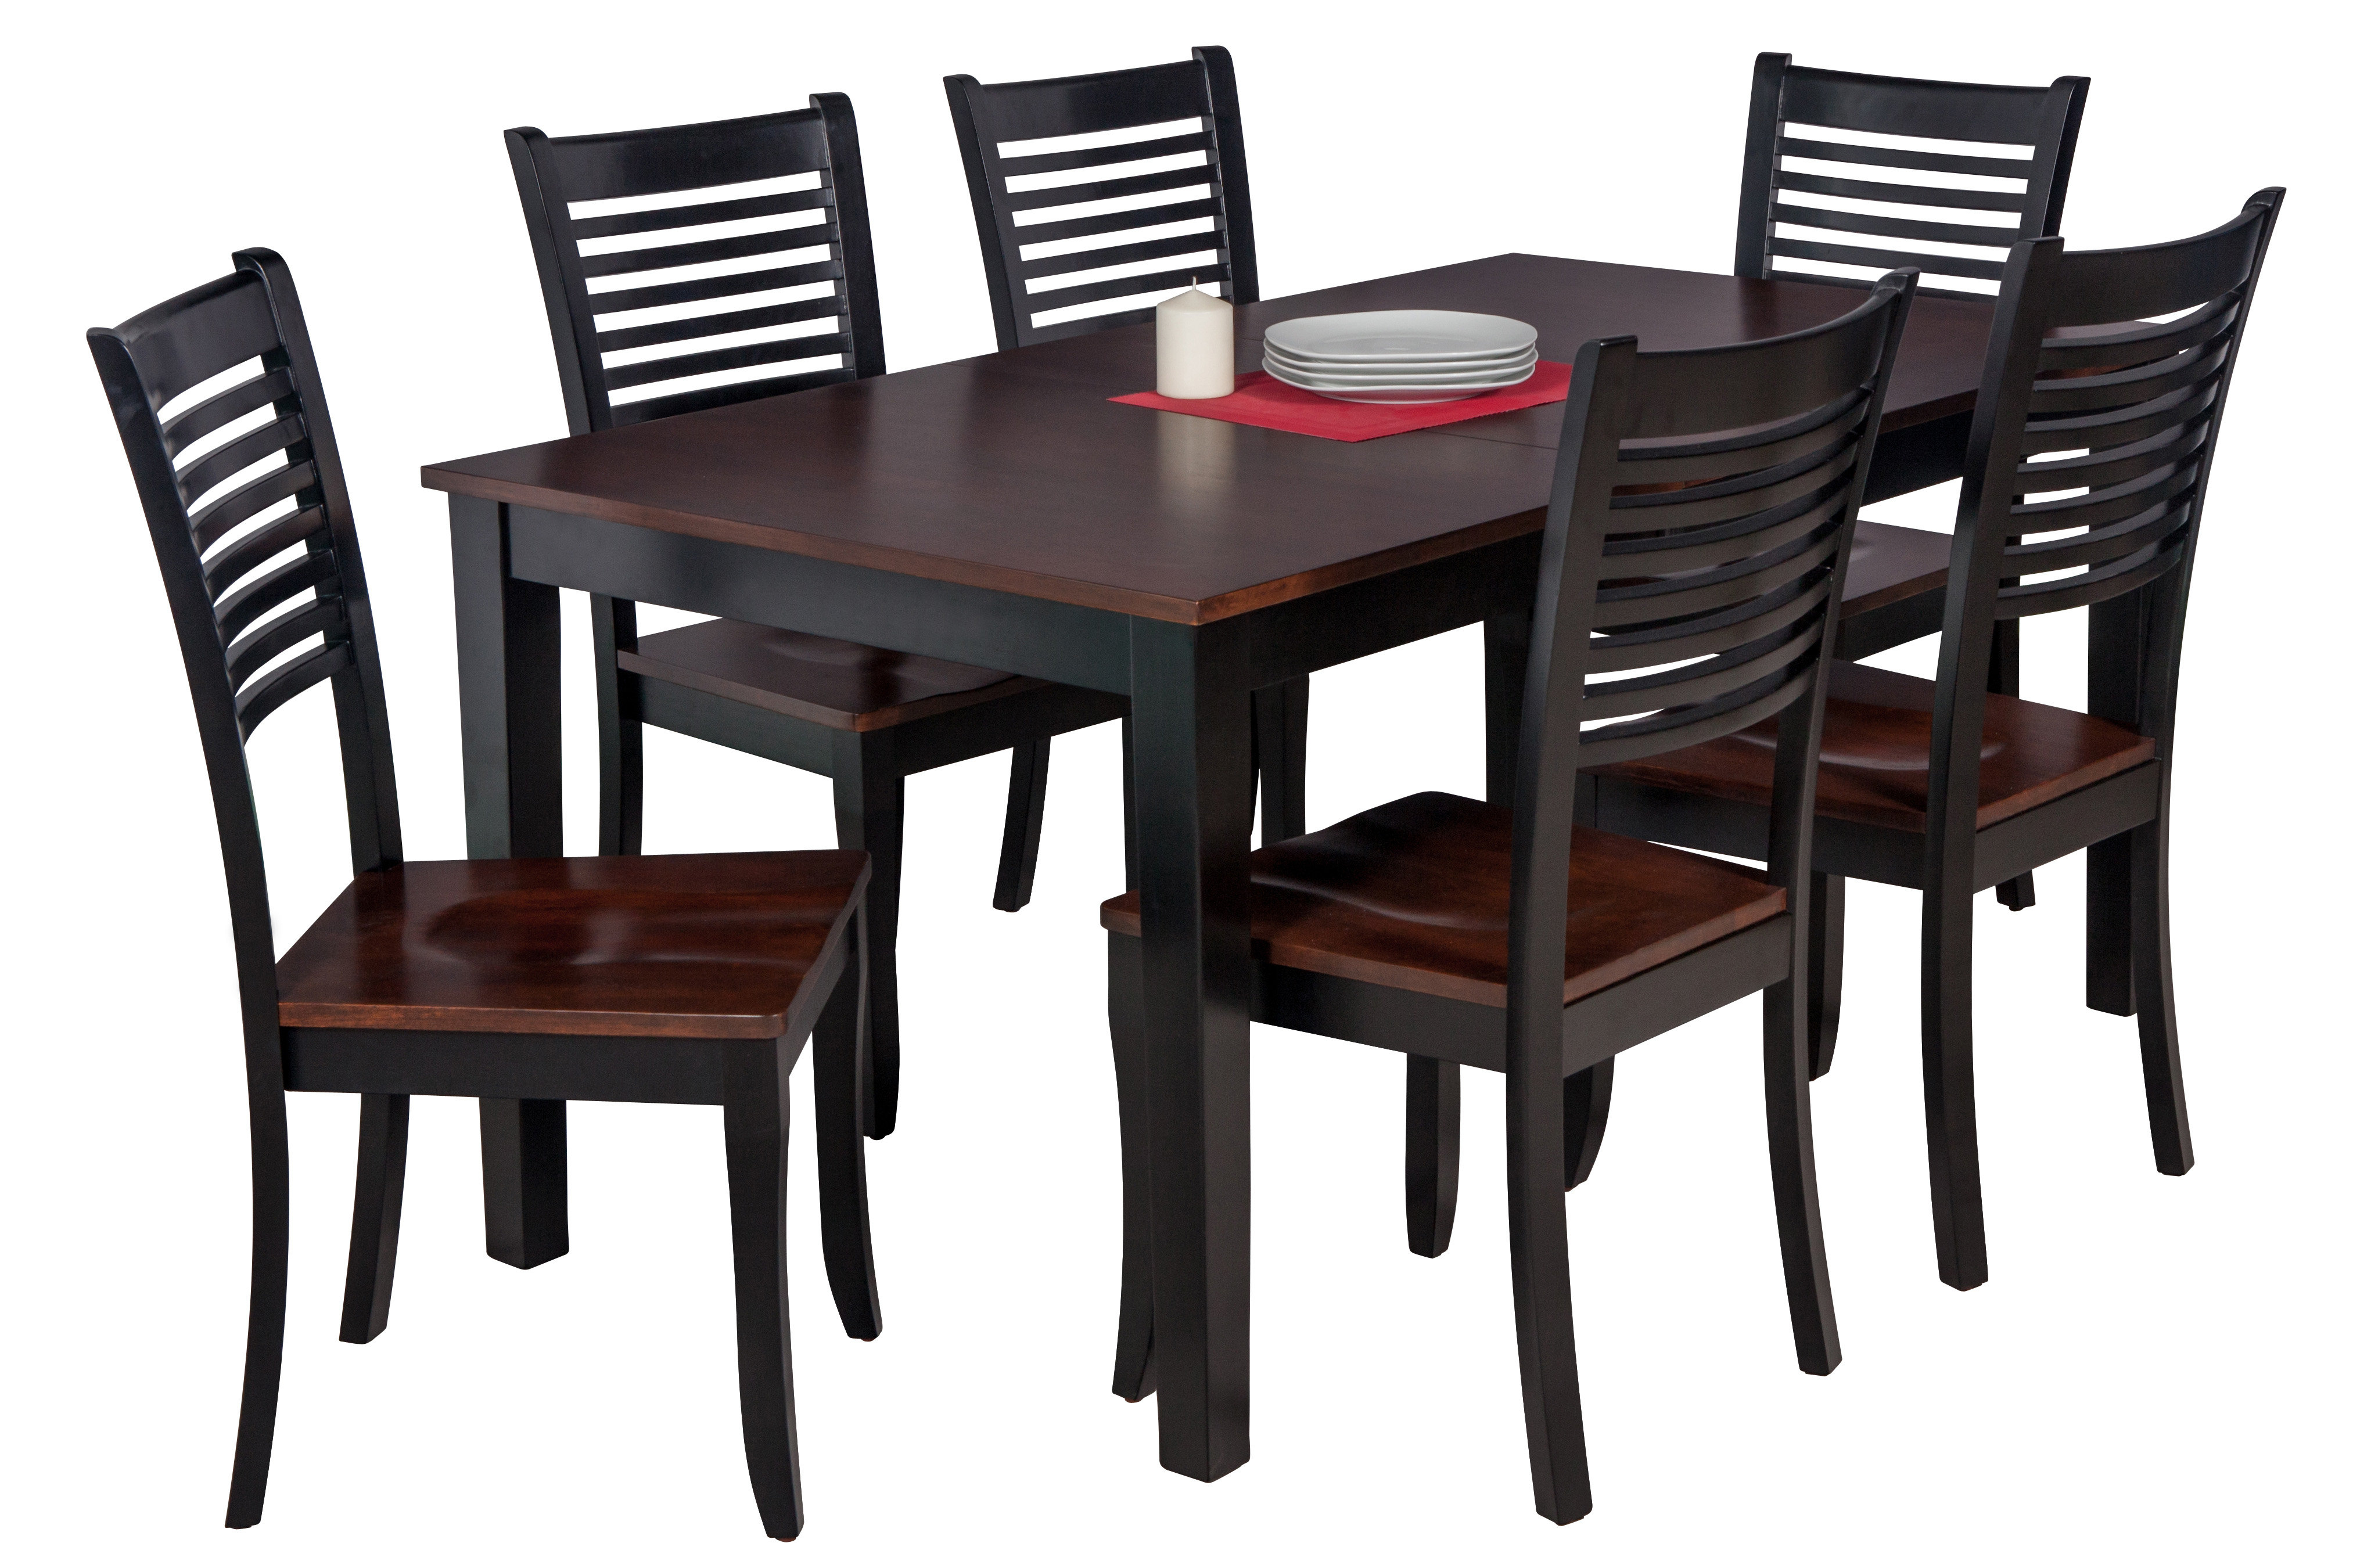 Downieville Lawson Dumont 7 Piece Solid Wood Dining Set Regarding Recent Hanska Wooden 5 Piece Counter Height Dining Table Sets (Set Of 5) (Photo 10 of 20)